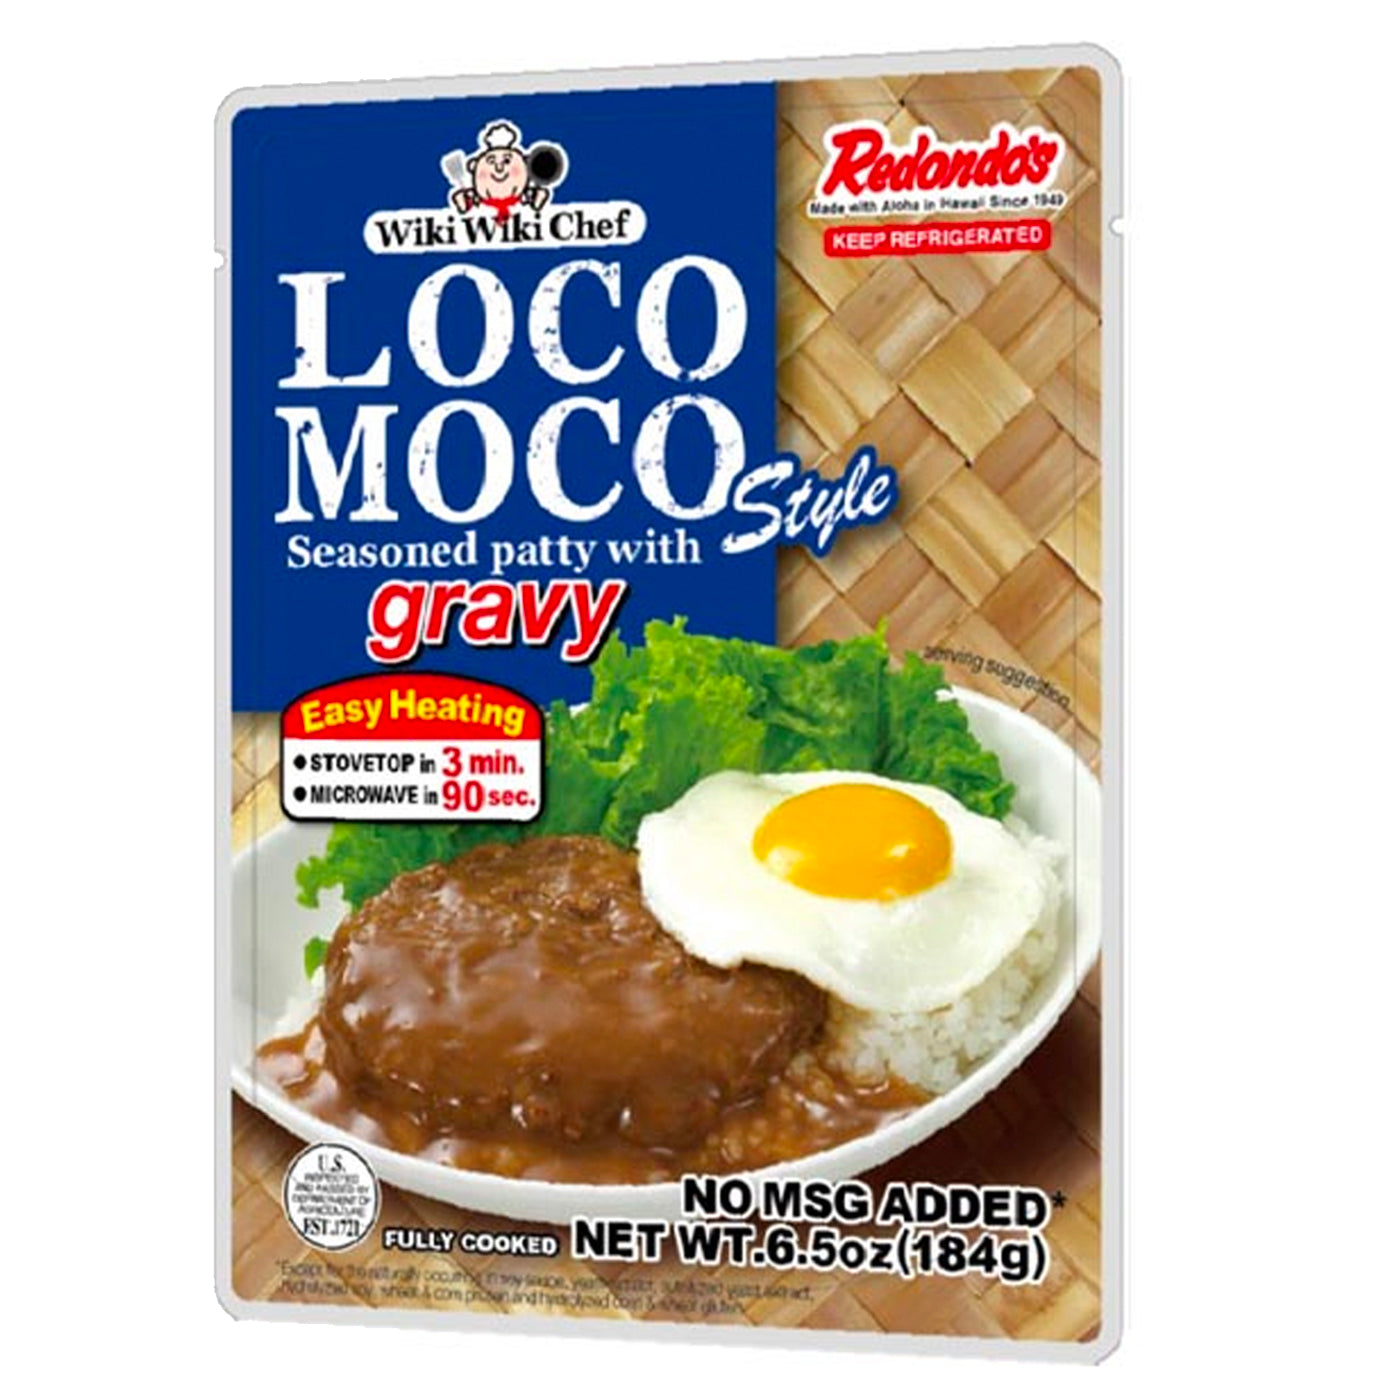 Redondo's Loco Moco Seasoned Patty with GRAVY (Hawaii's Favorite)